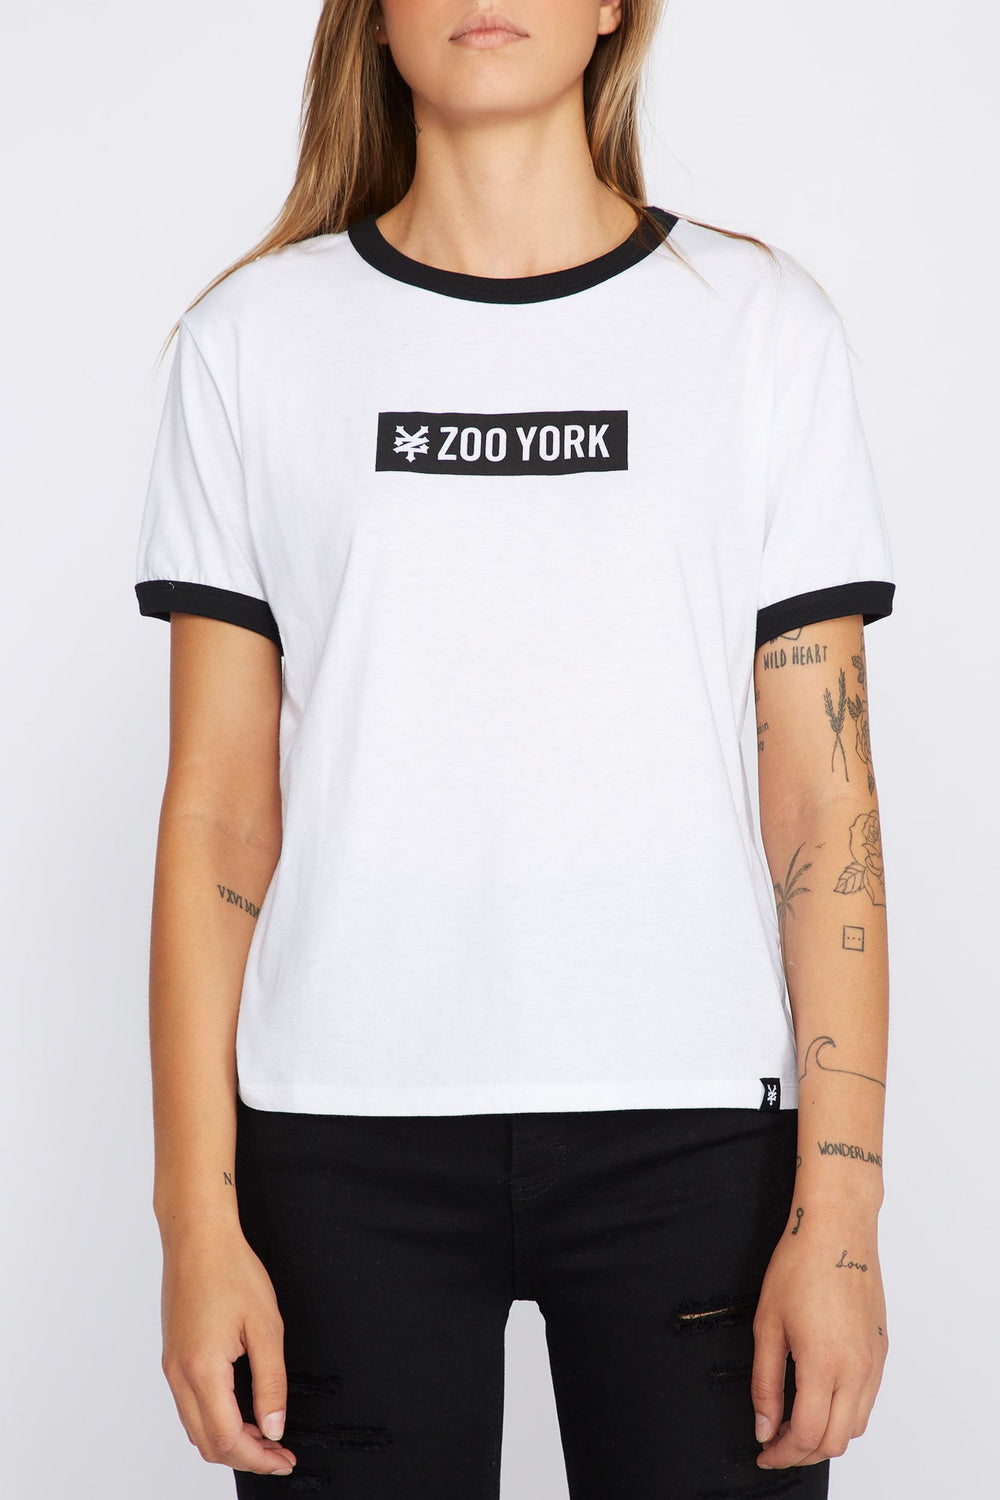 Zoo York Womens Logo T-Shirt Black